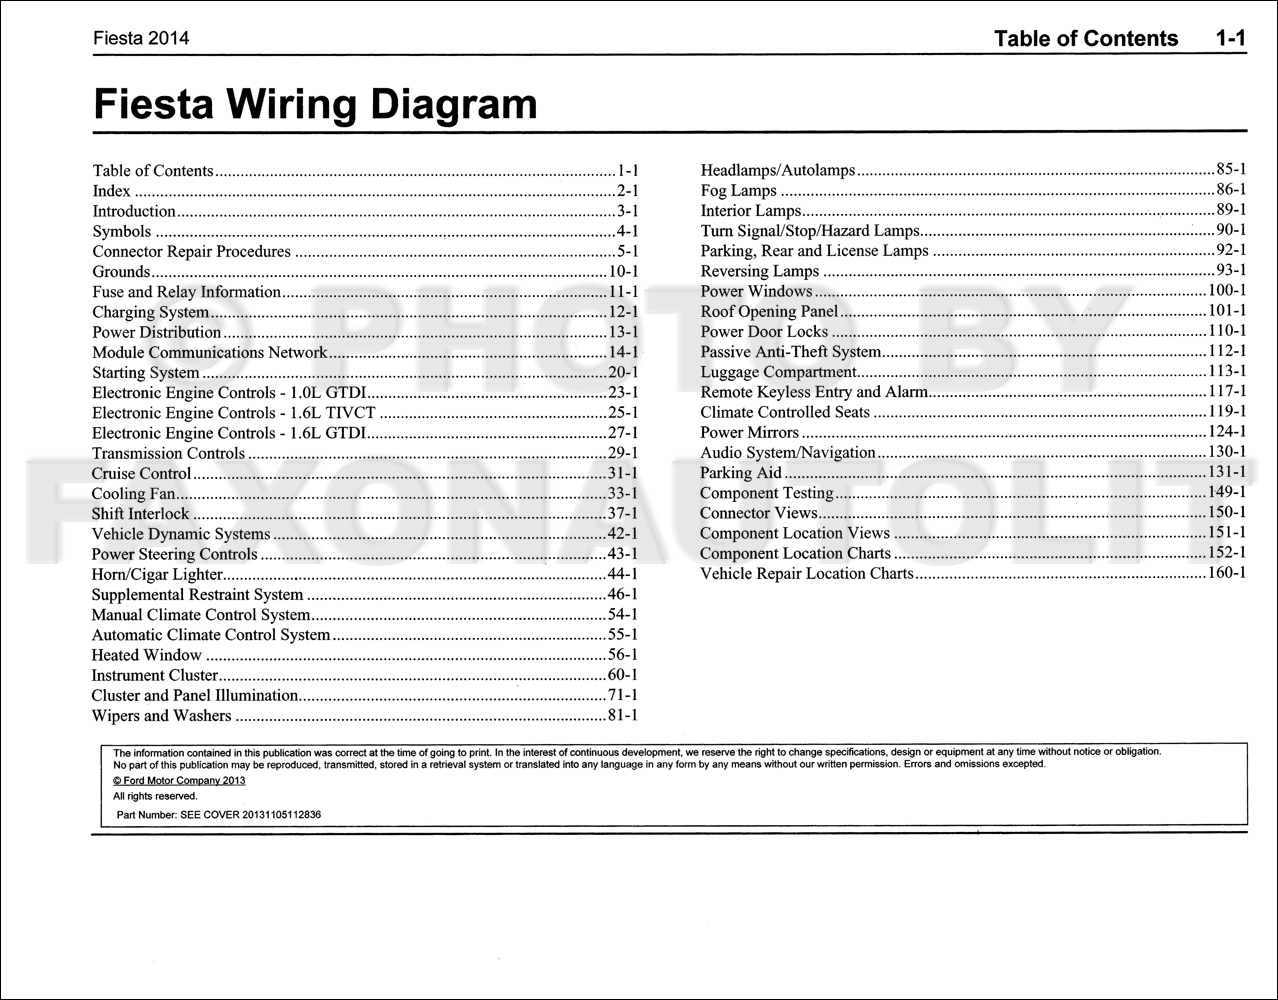 2014 Ford Fiesta Wiring Diagram - All Wiring Diagram